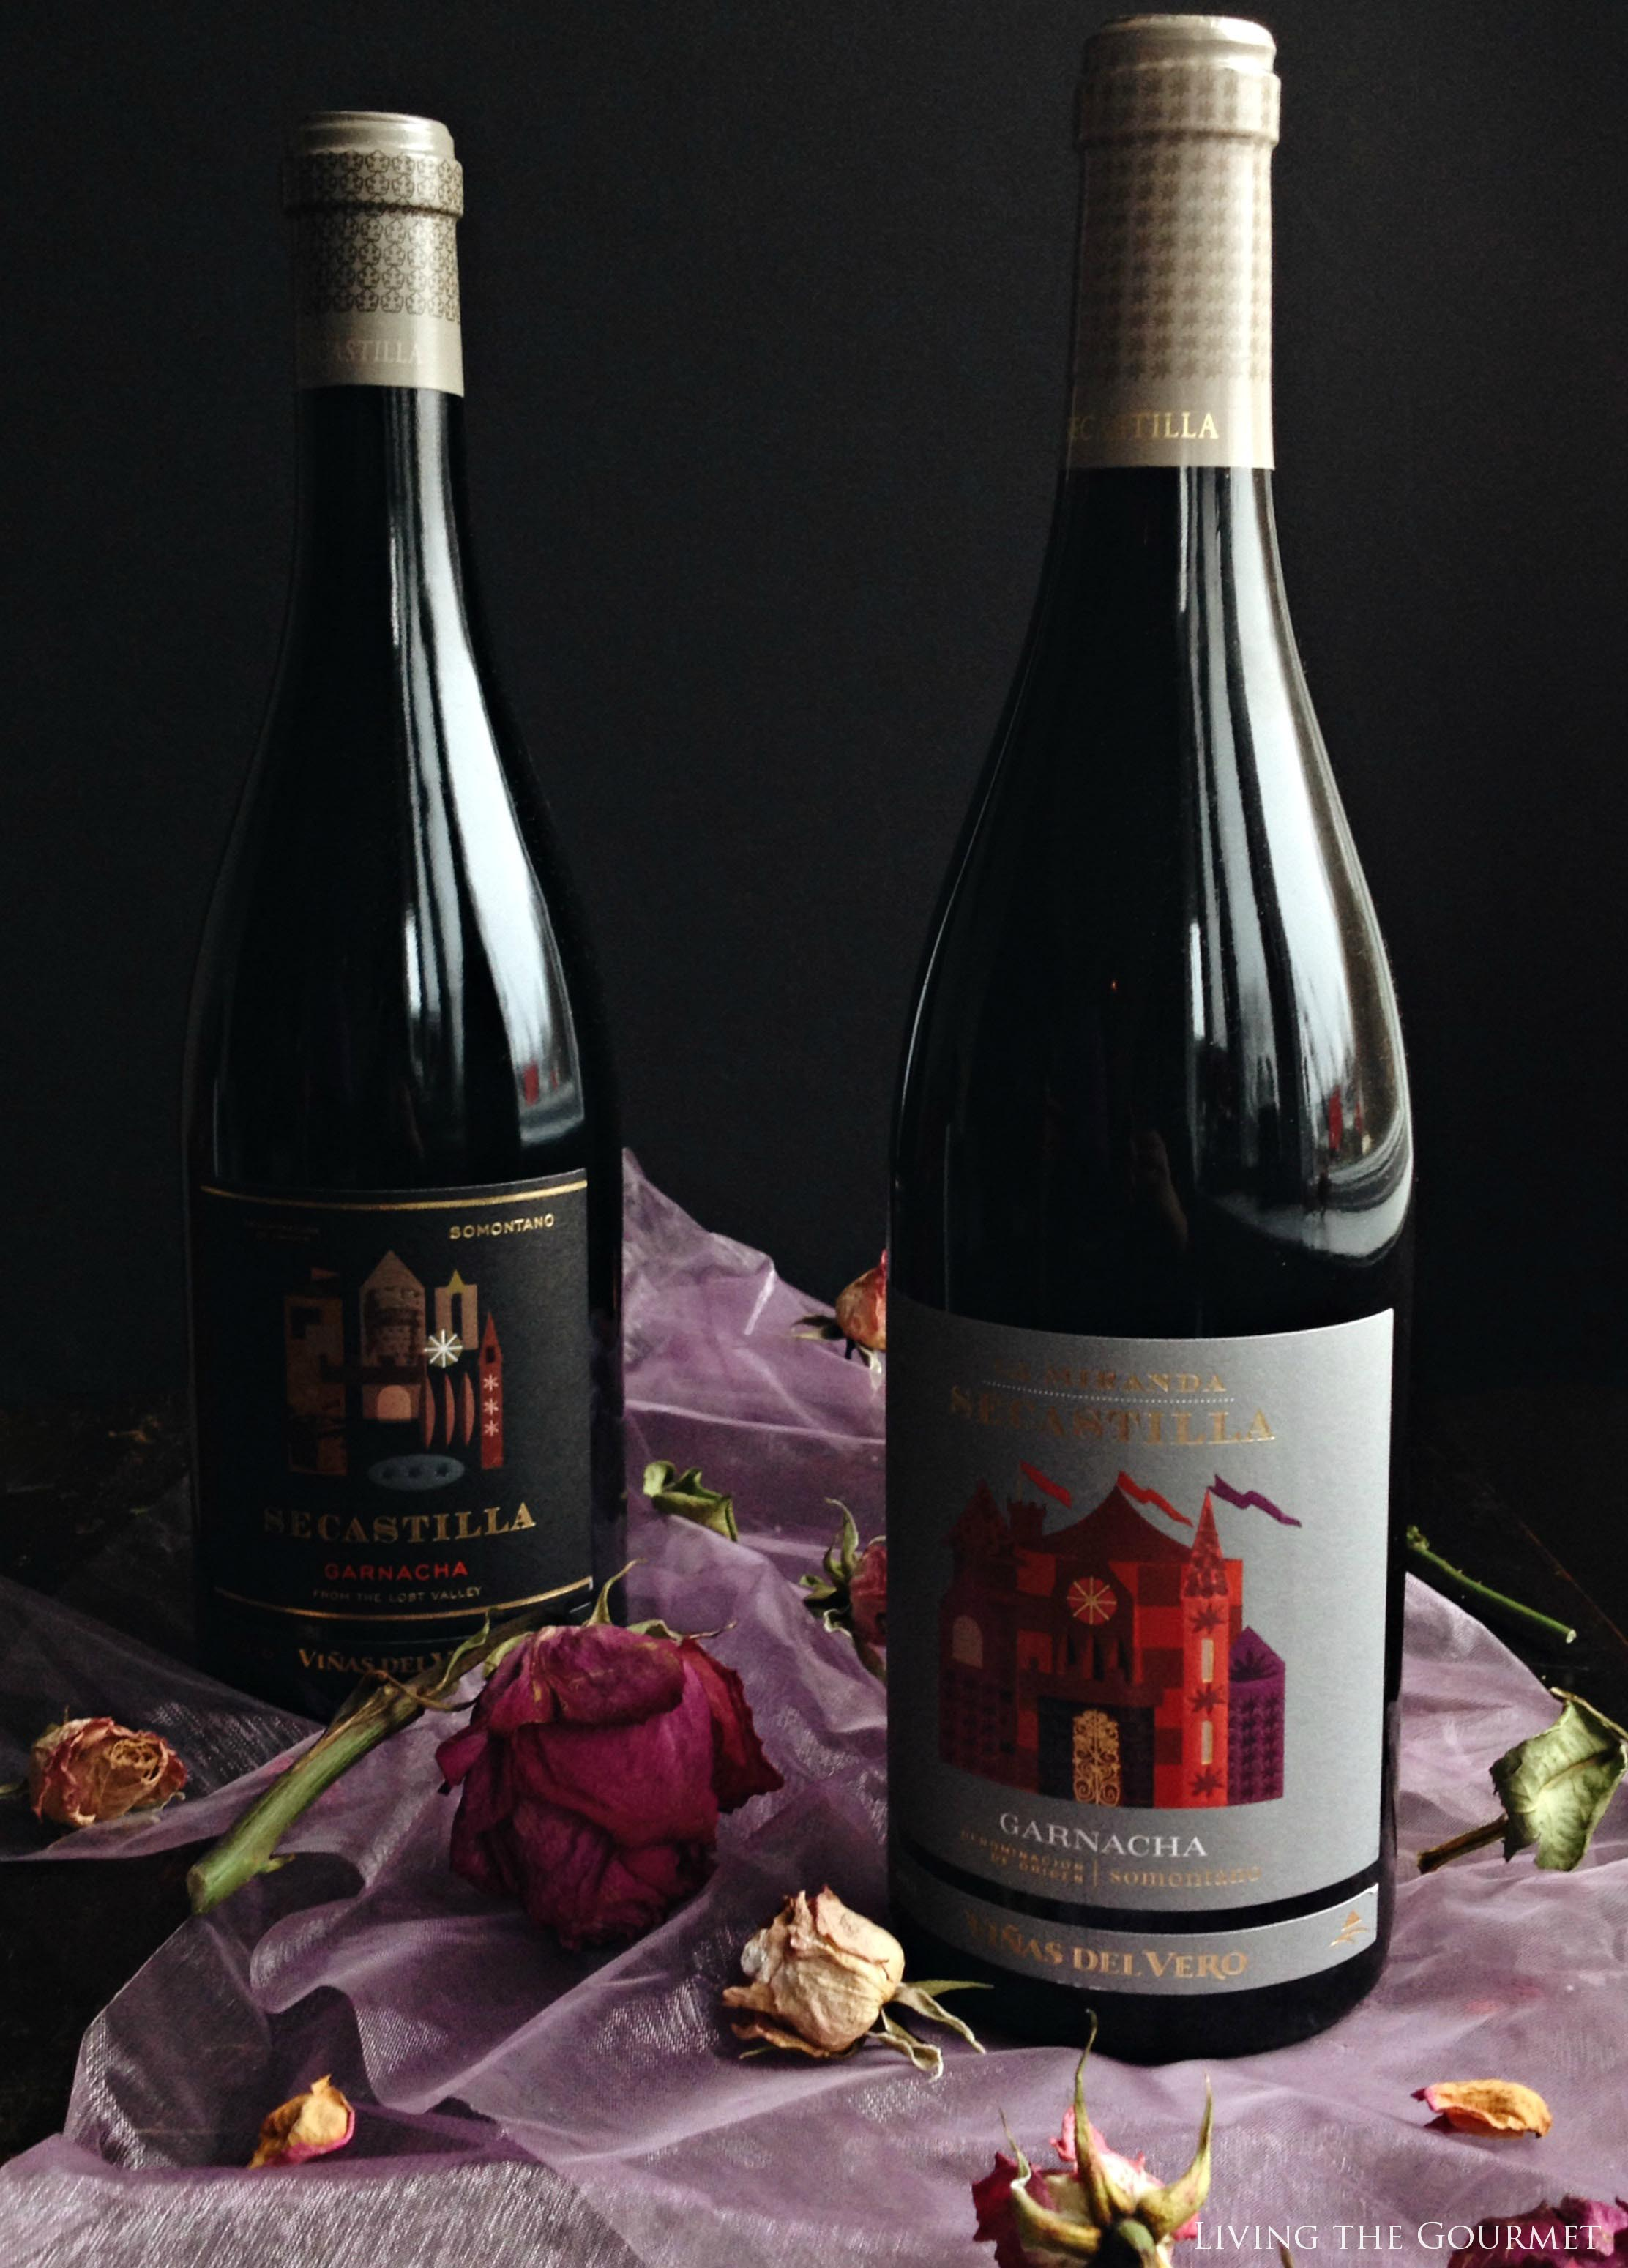 Living the Gourmet: Wines from Vinas del Vero